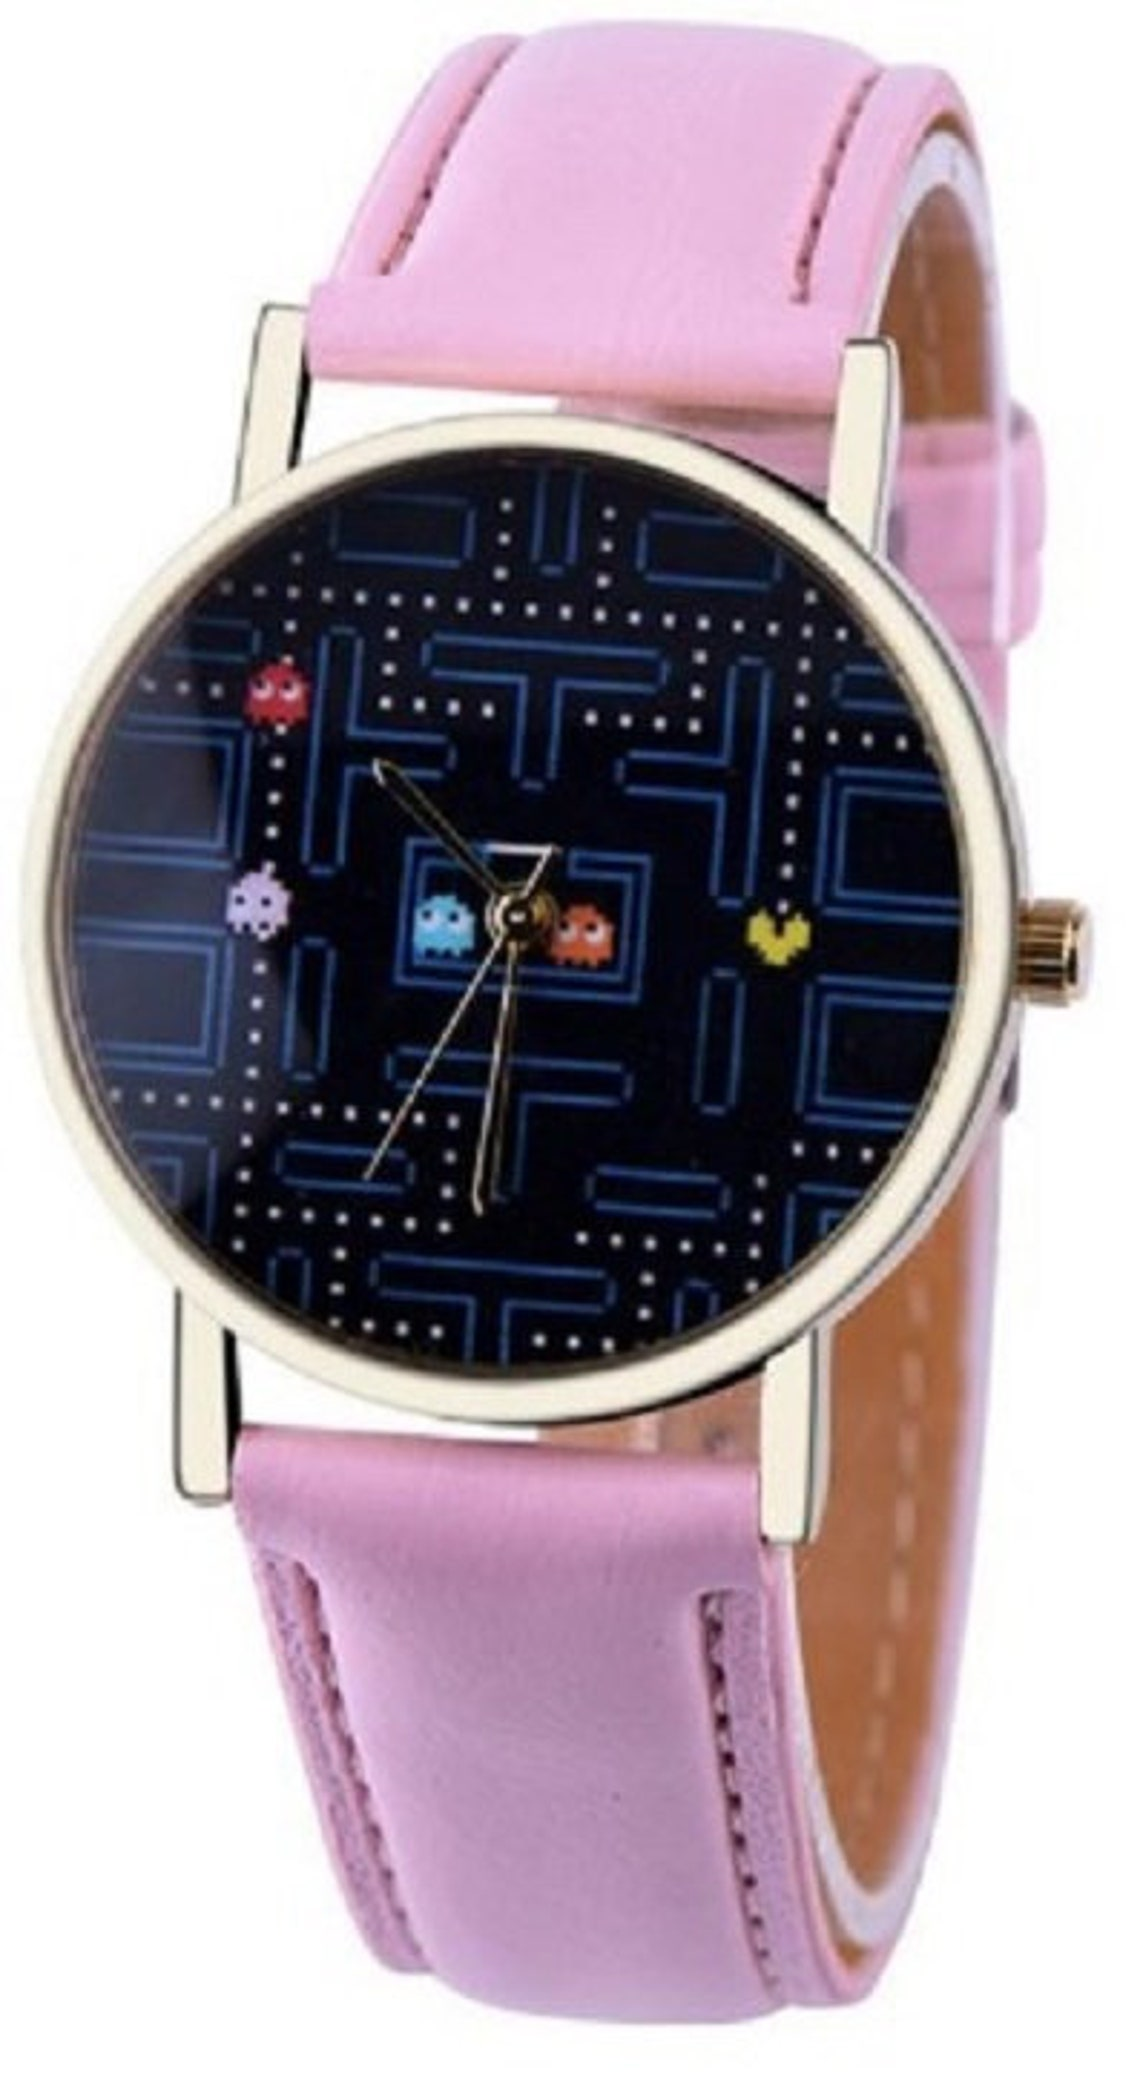 Round Pac-Man Watch with pink leather strap